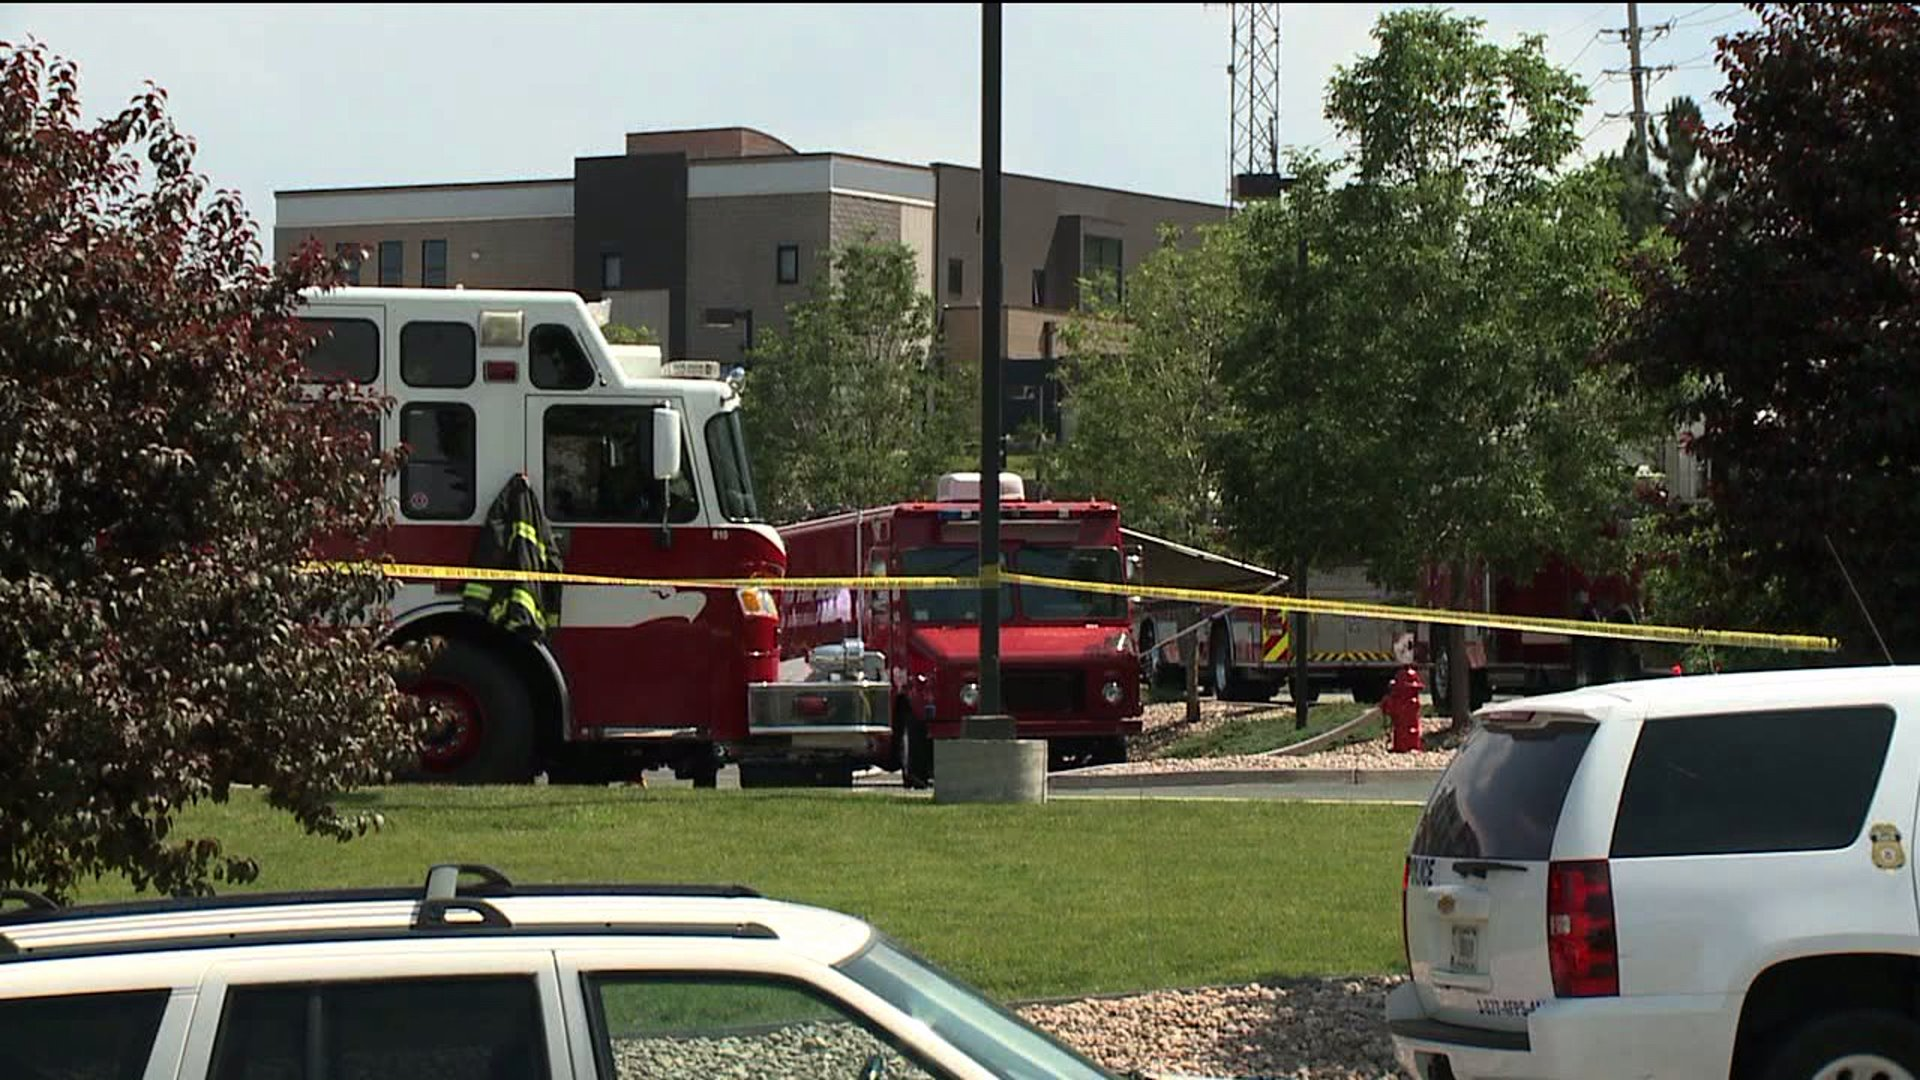 Suspicious package forces evacuation of social security office in Lakewood, Colo.